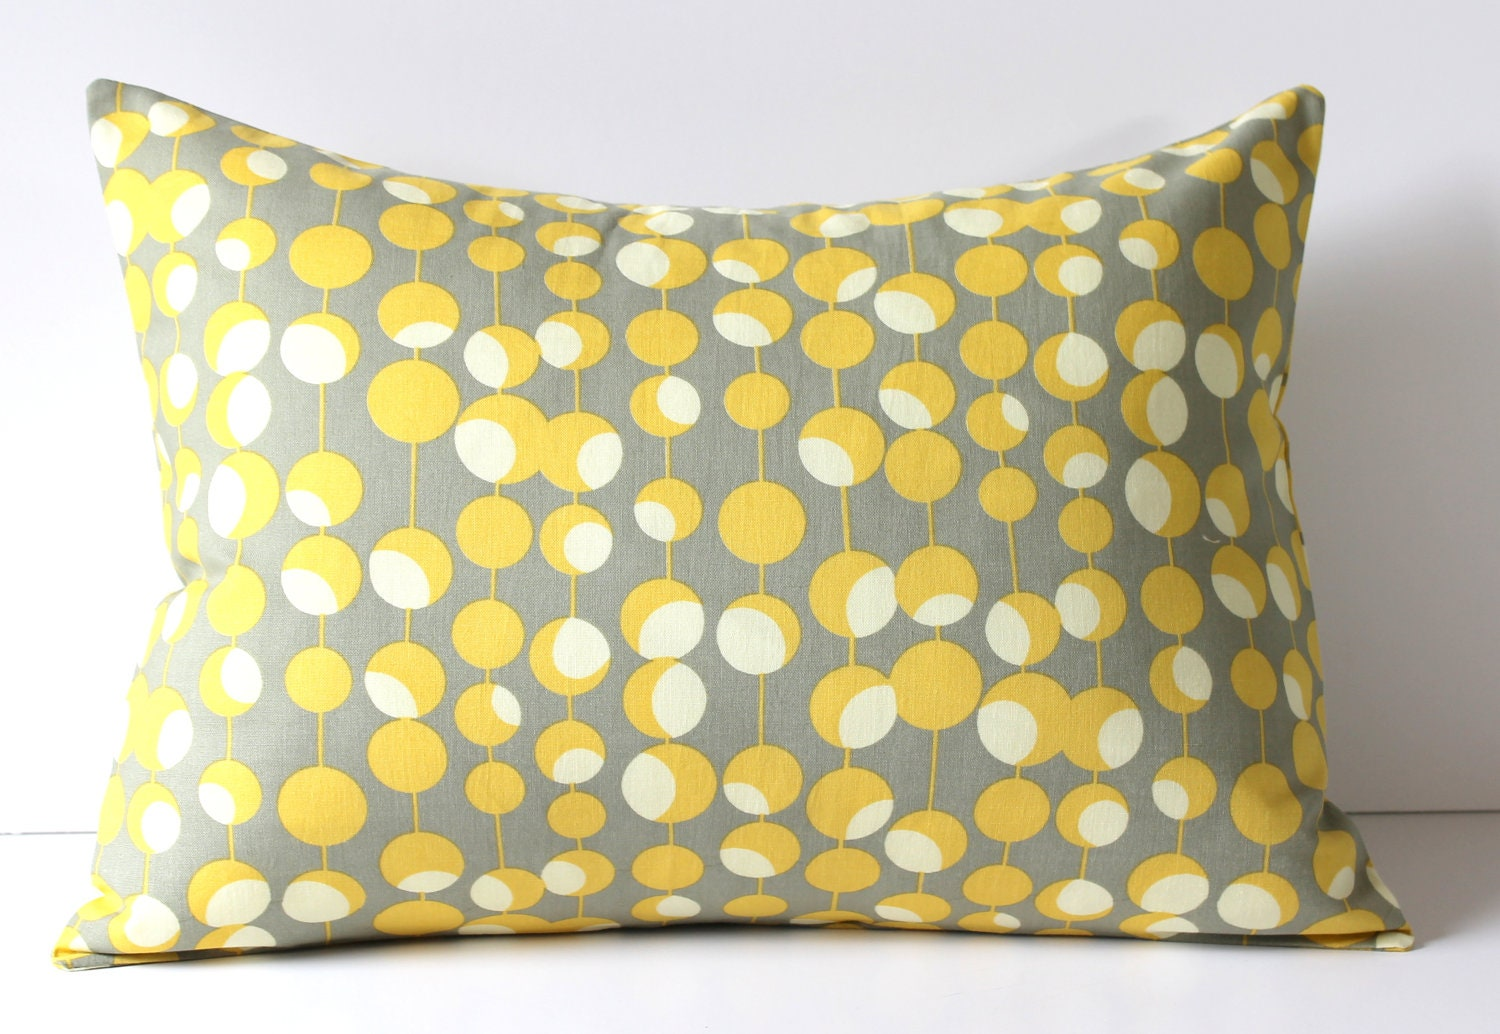 Throw Pillows Groupon : Decorative Pillow Cover Gray & Mustard Yellow Martini Dots